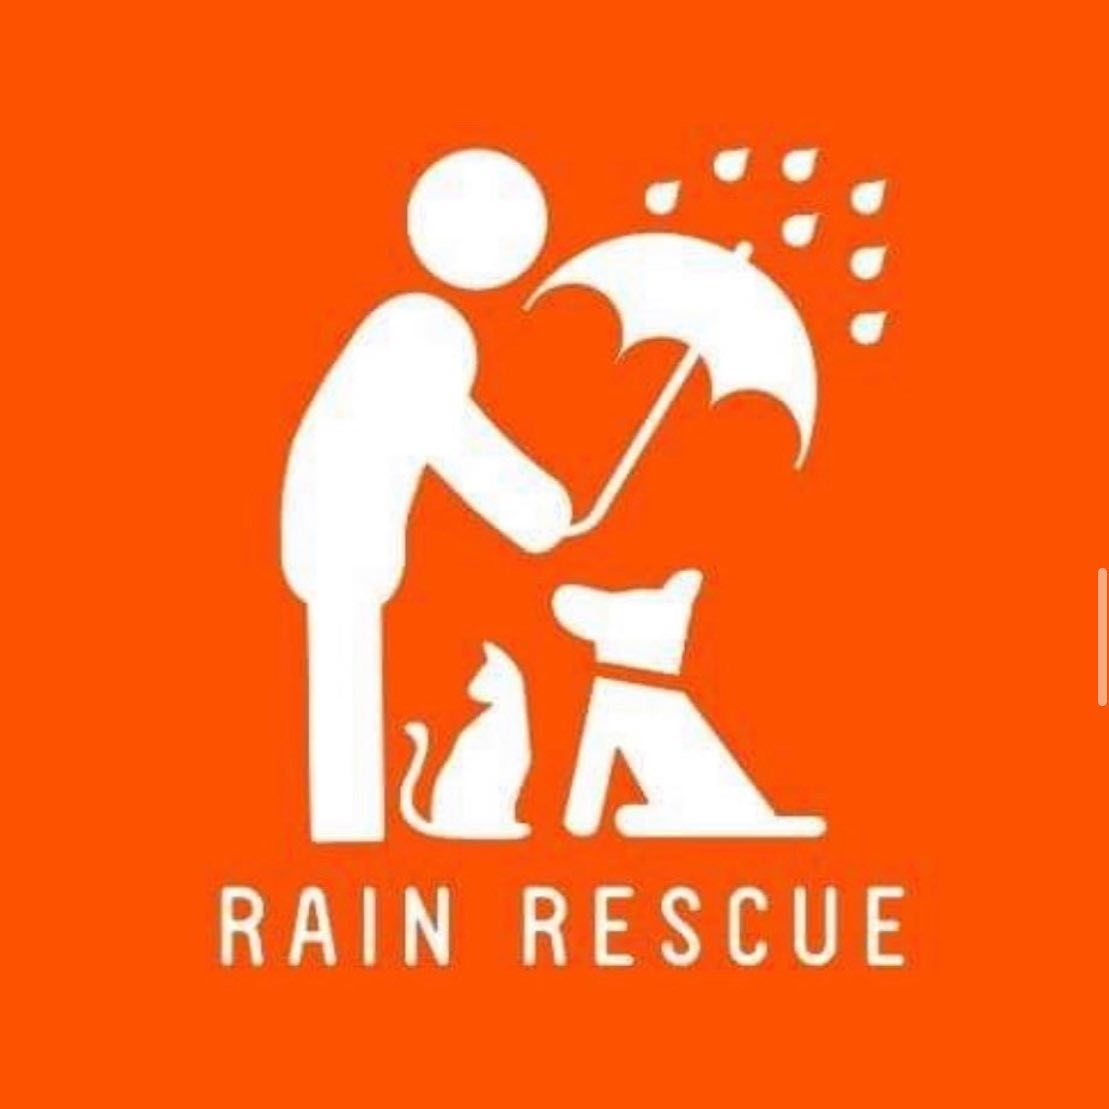 This week's Charity Tuesday goes to @rainrescue who are joining the Peak District Challenge for t...